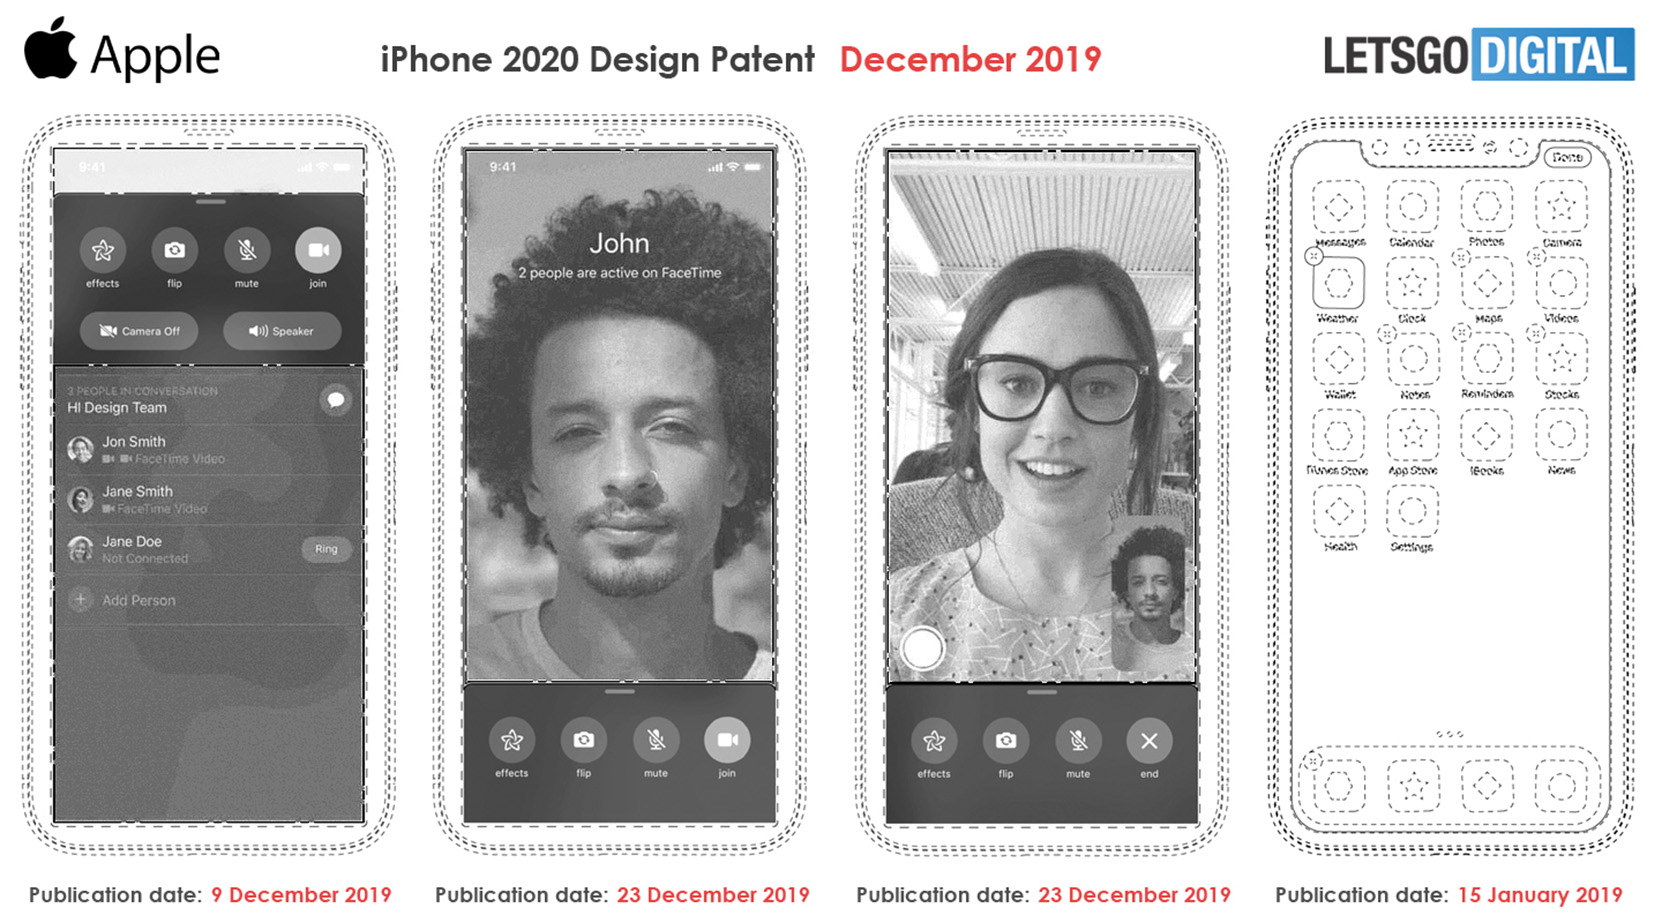 Notchless 2020 iPhone patent